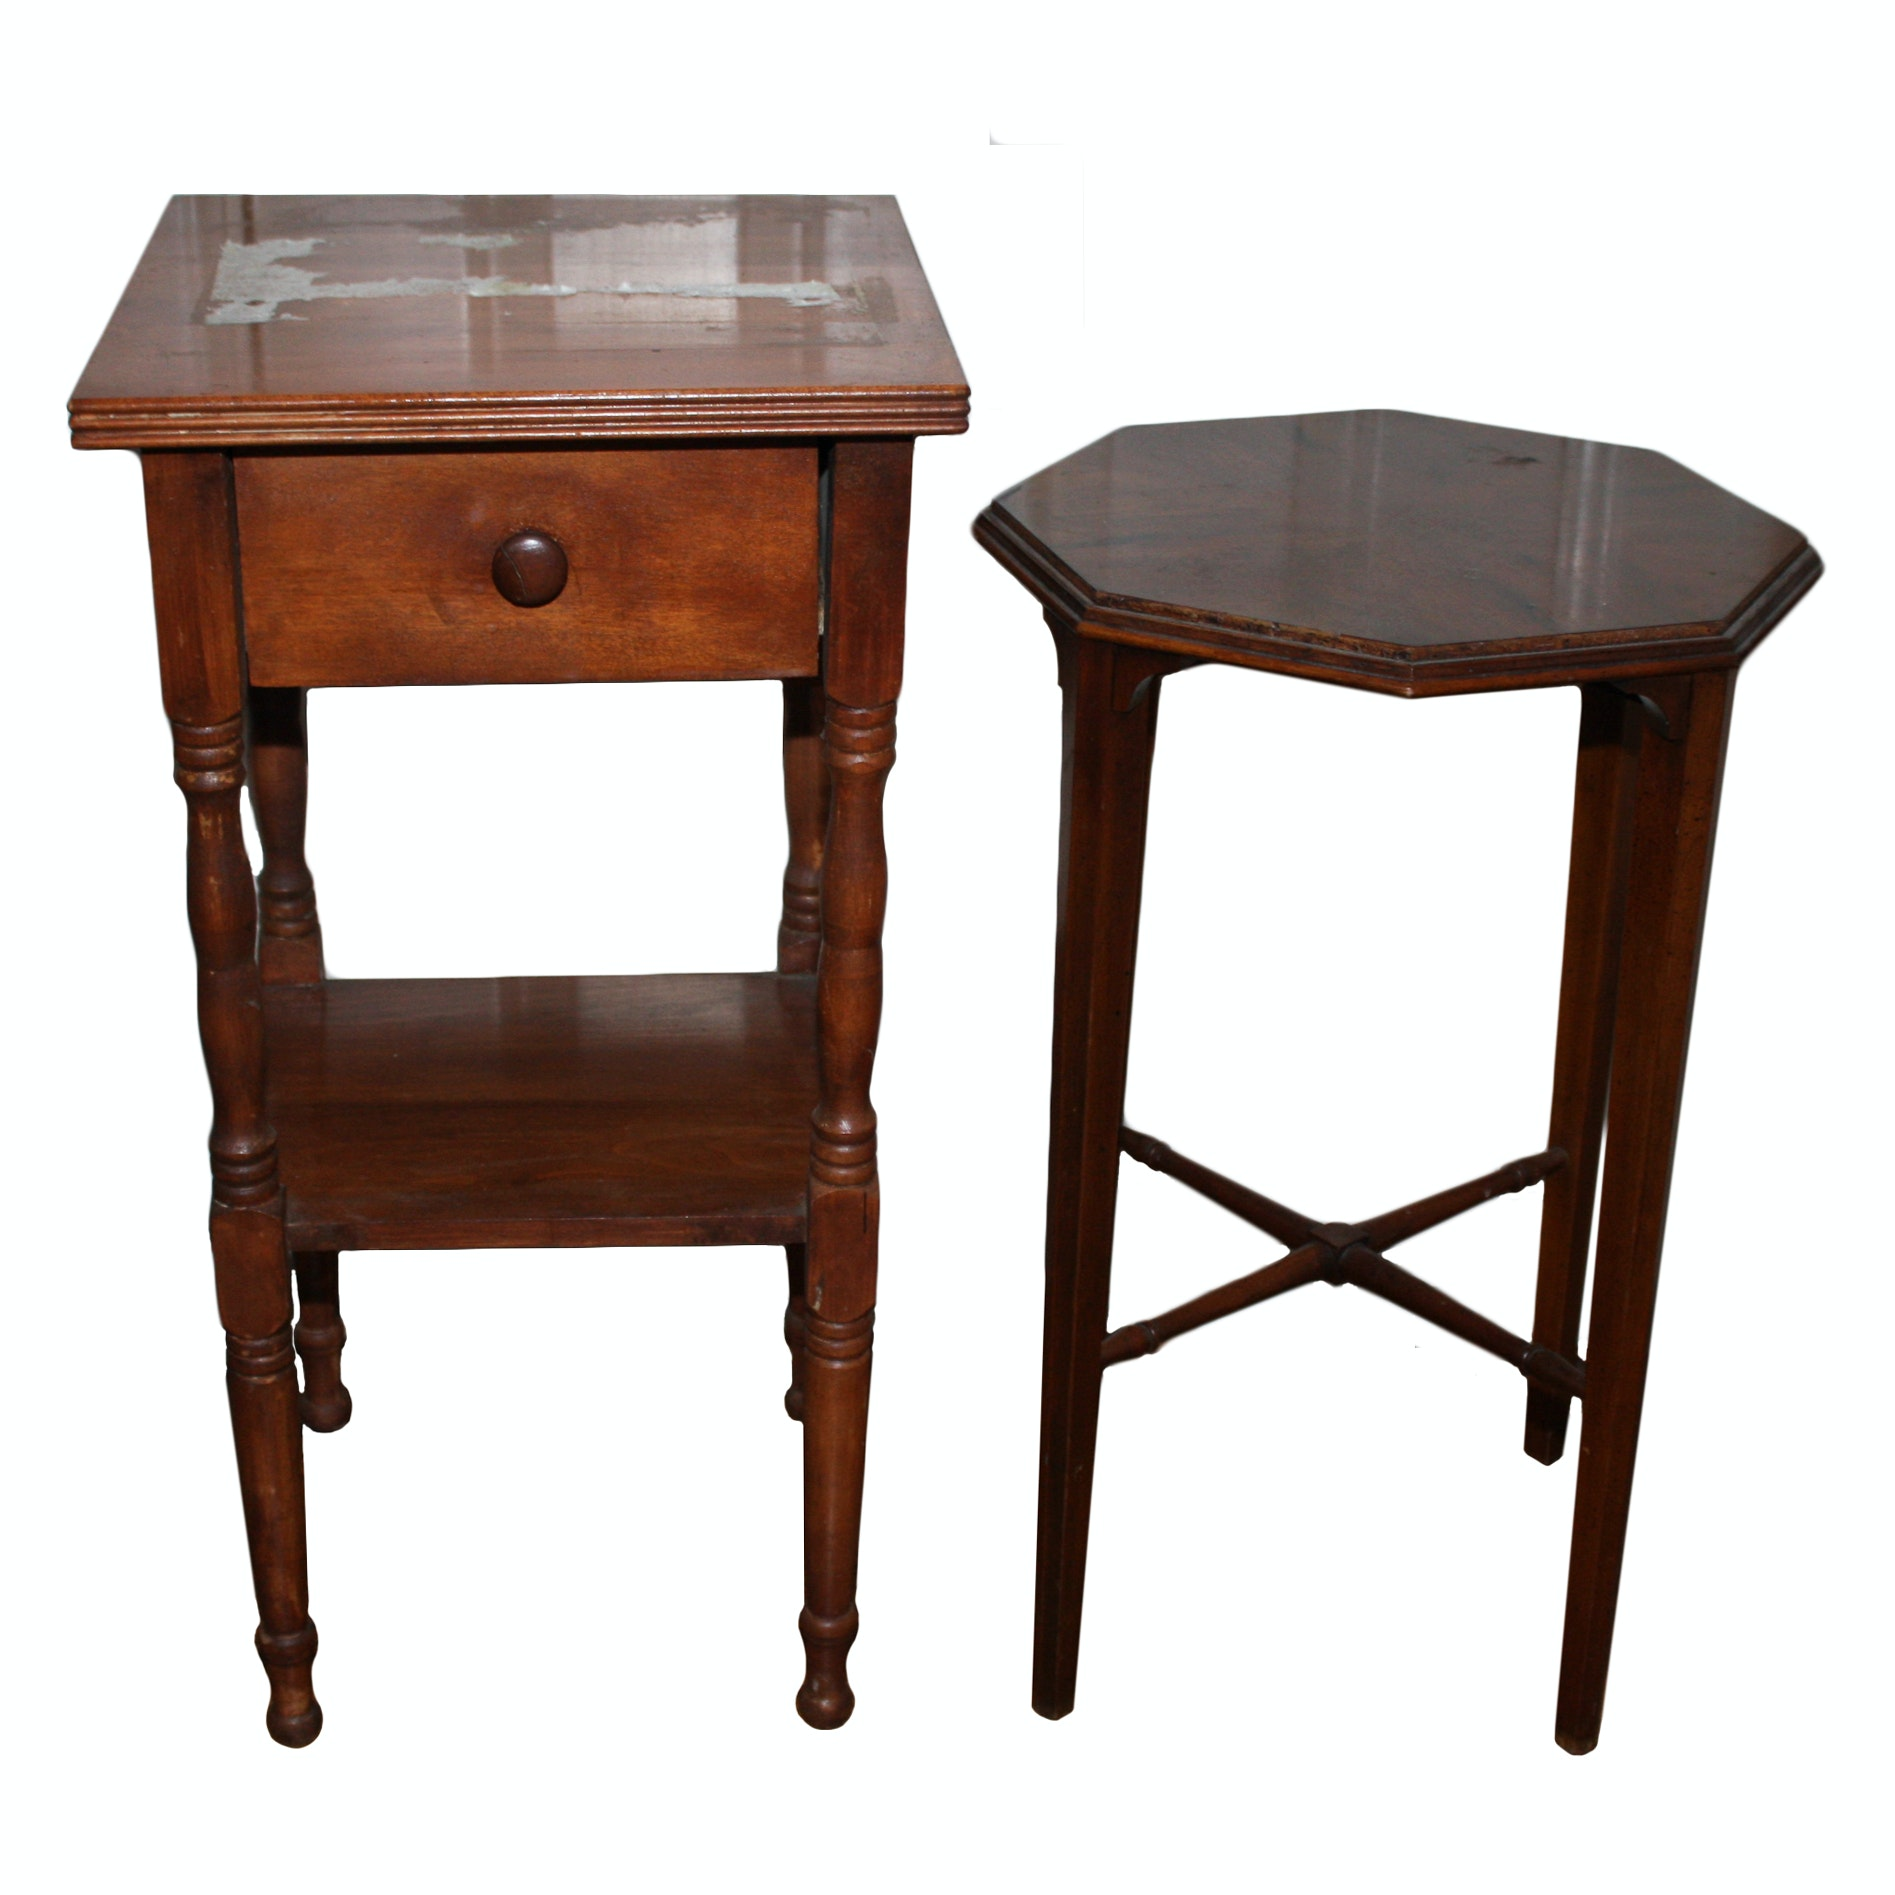 Two Vintage Wood End Tables